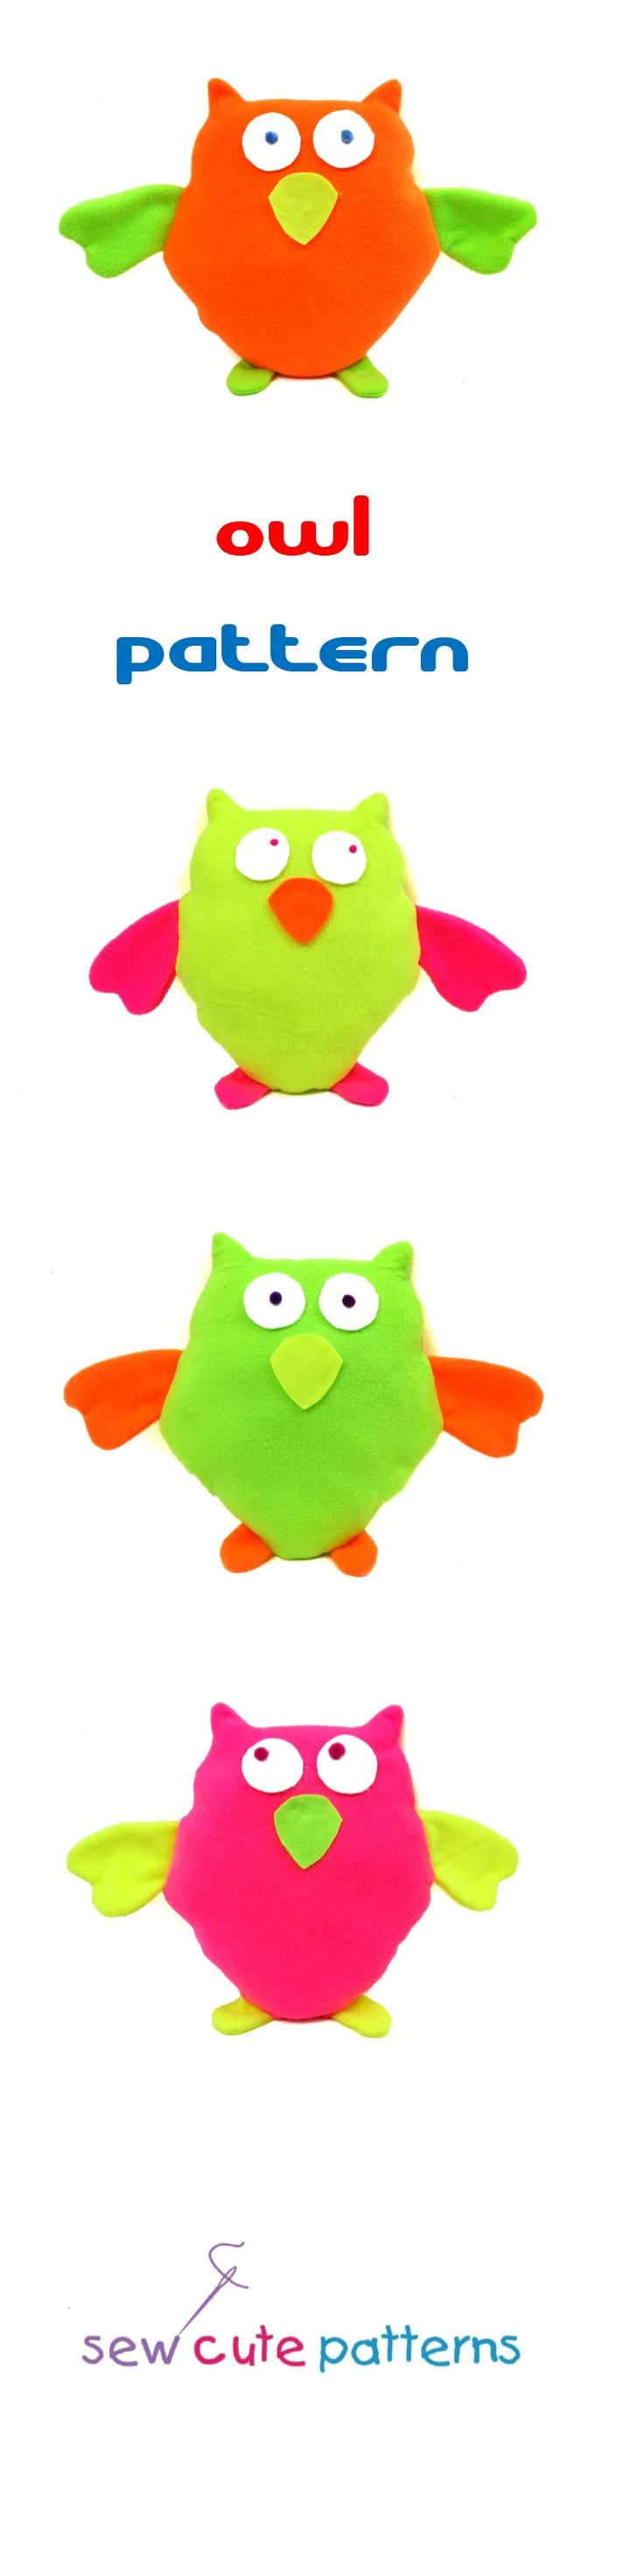 Owl pattern includes instructions and pattern pieces to make an adorable plush owl.  Sewing pattern also includes a fun short story for kids!  Read the story of the glow in the dark owl and then use the instructions and pattern pieces to make your own glow in the dark pet.  Pattern is available for instant PDF download.